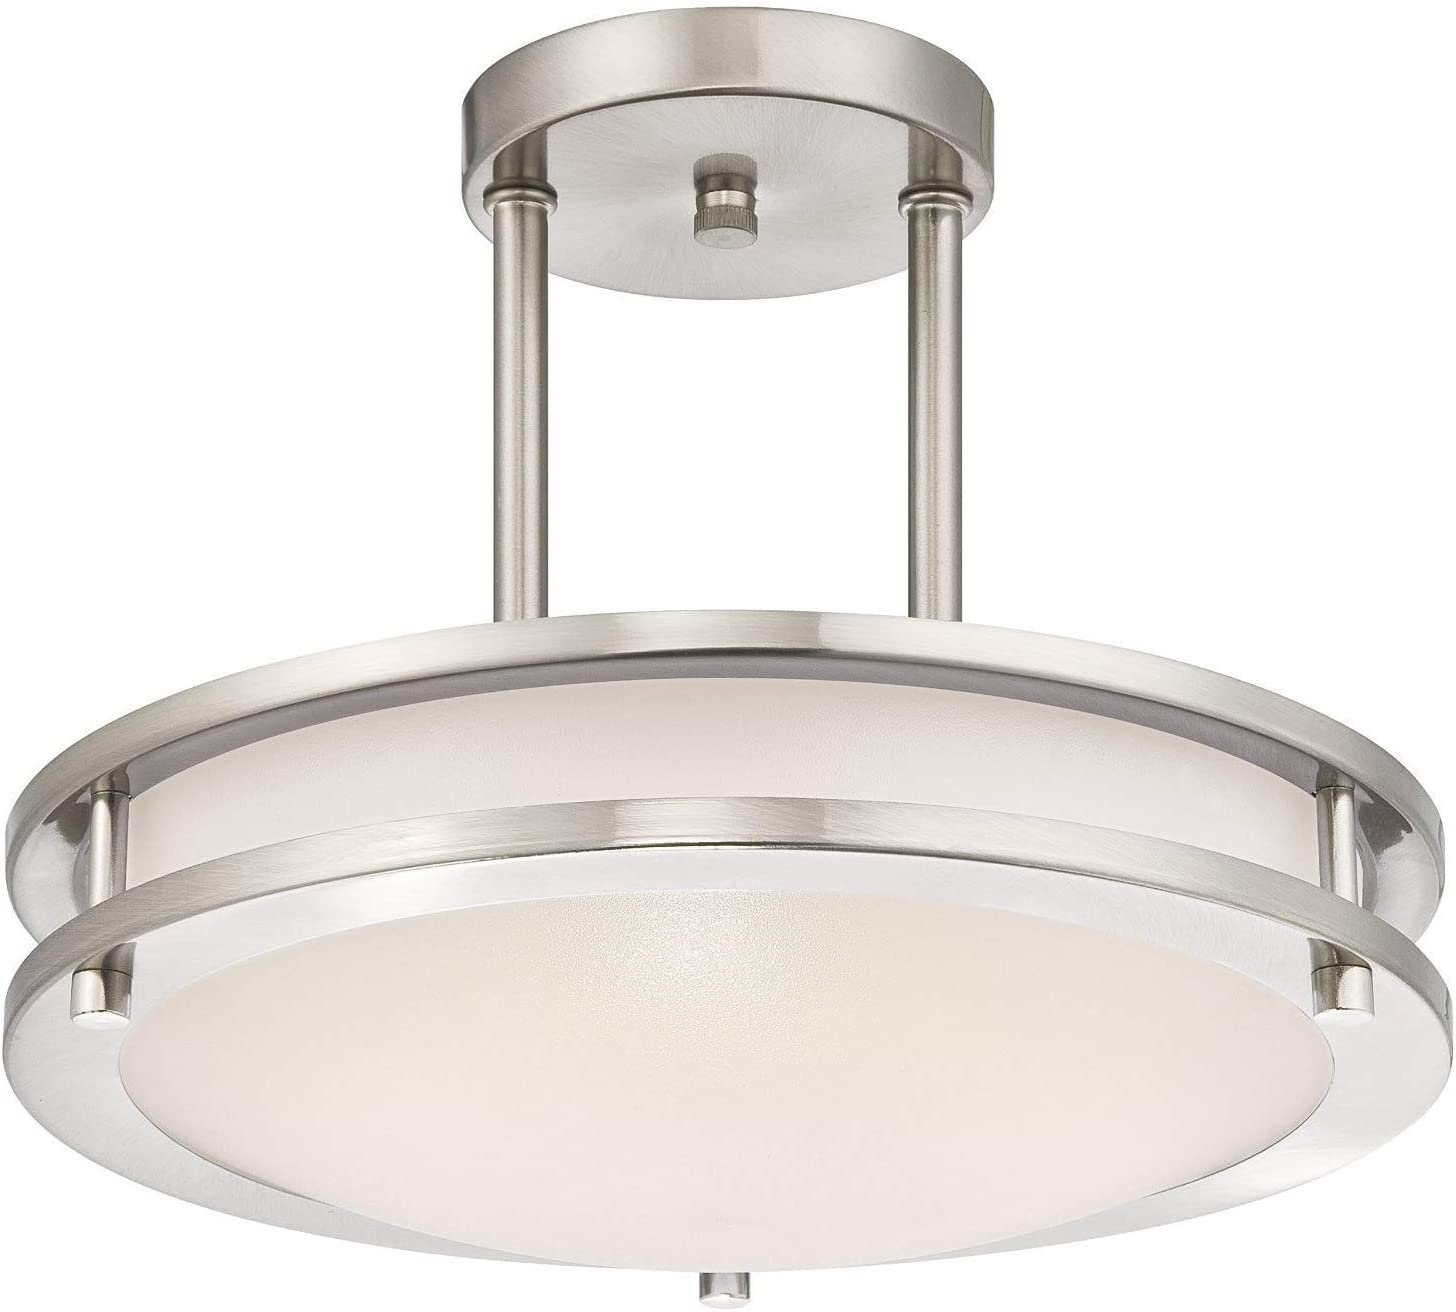 LB72131 LED Semi Flush Mount Ceiling Fixture